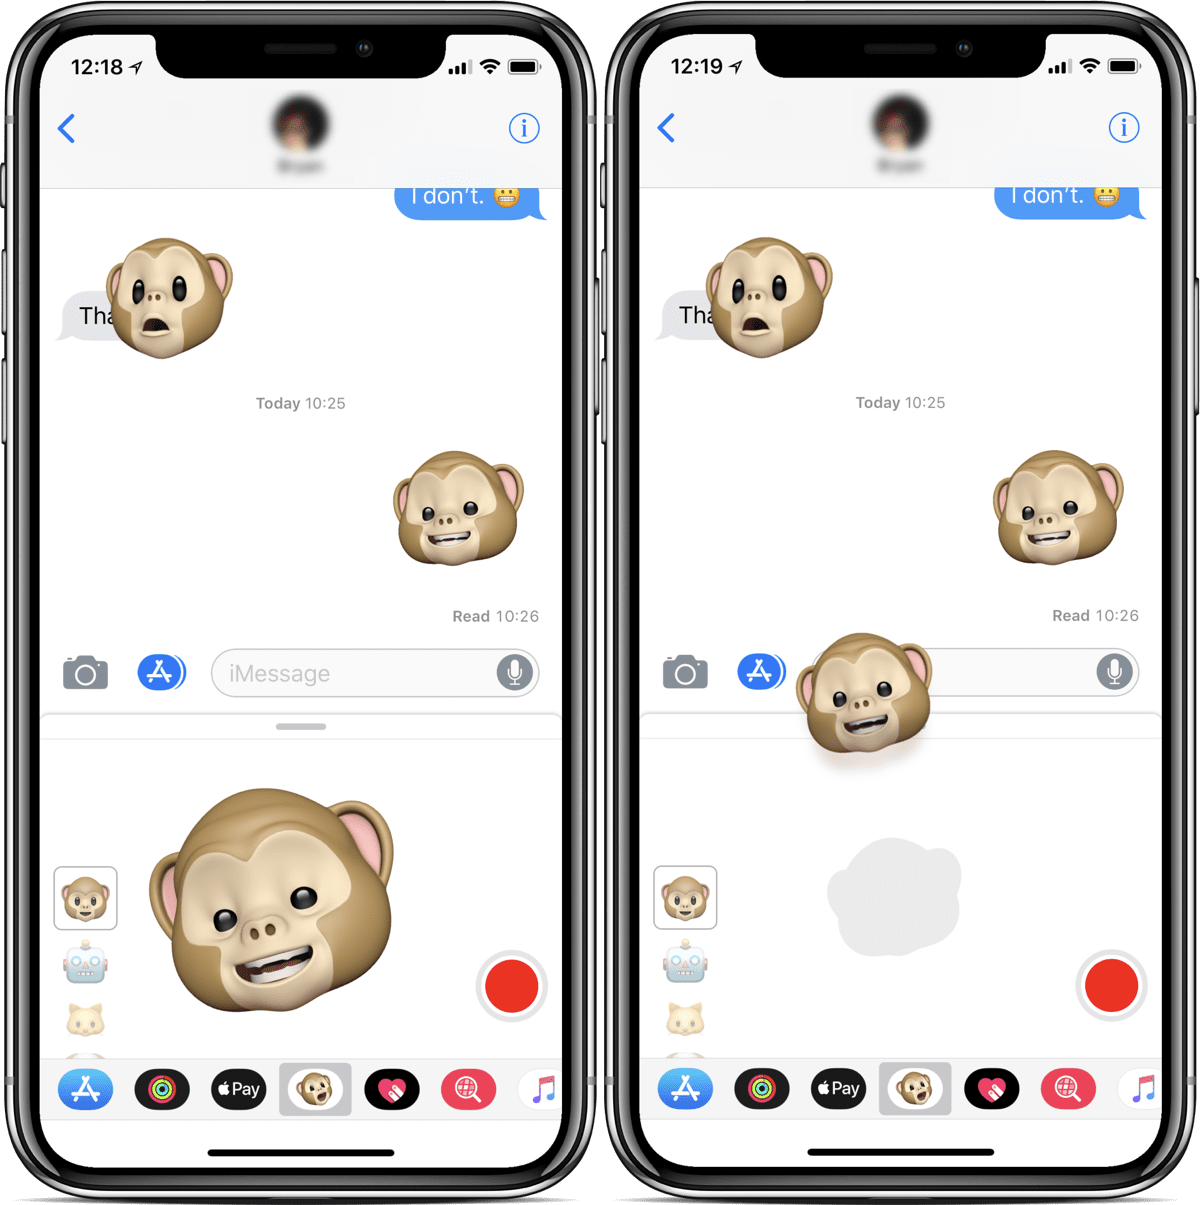 Screenshots of Animoji stickers you can send to friends.